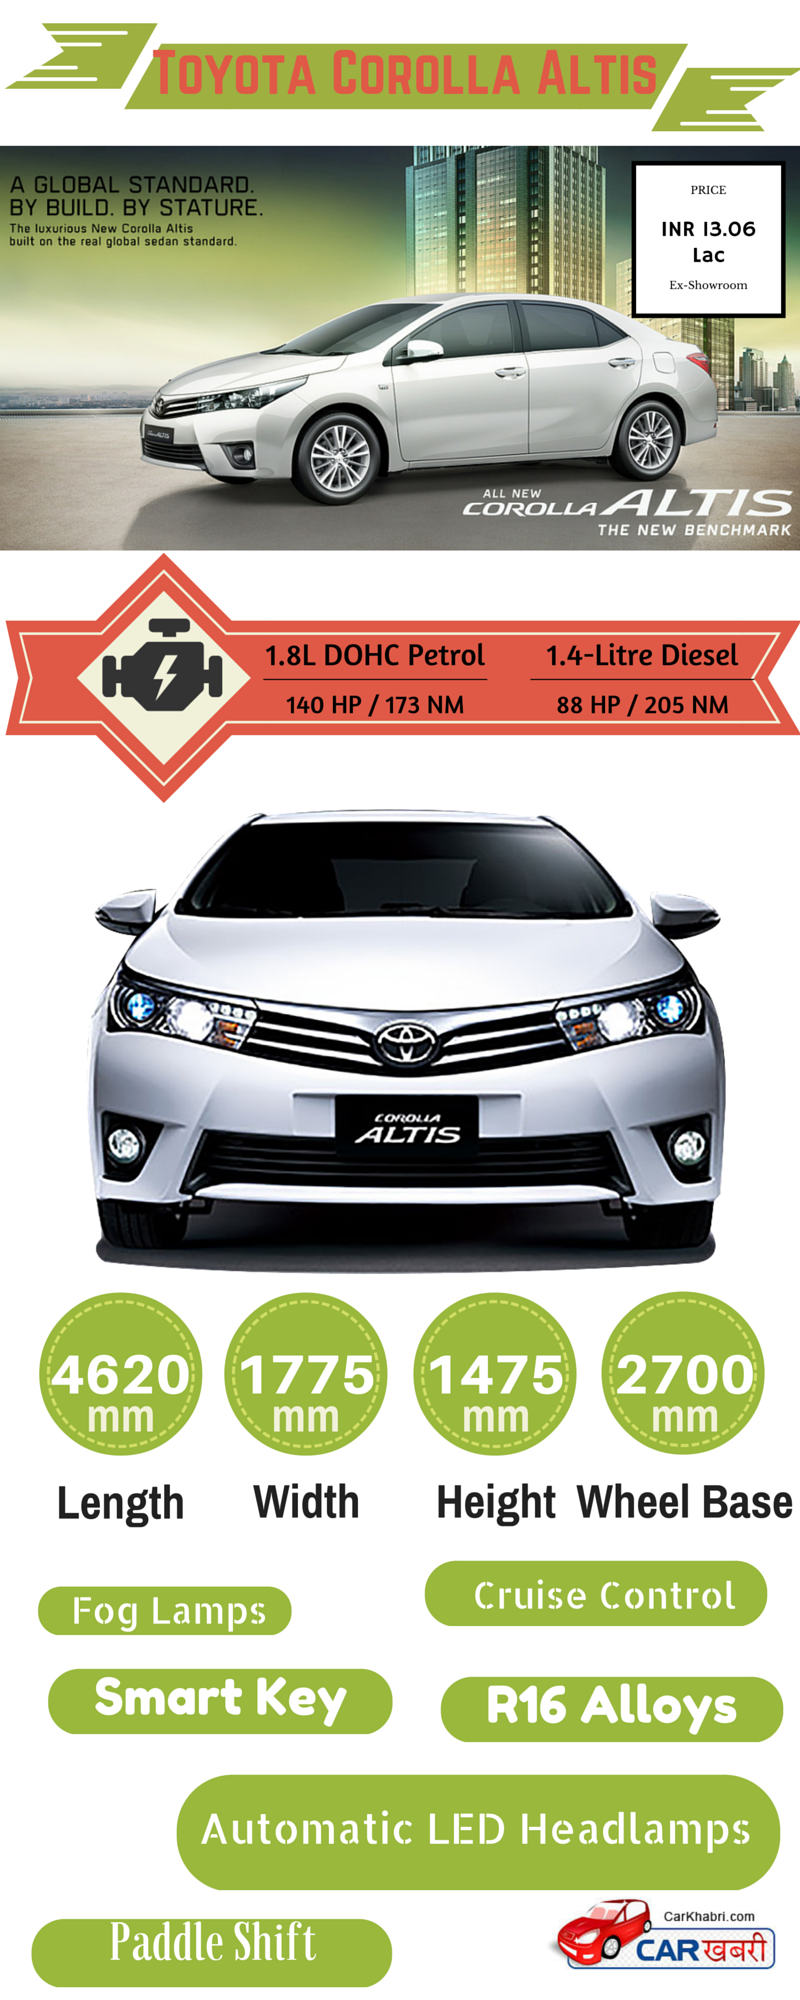 Limited Edition Corolla Altis